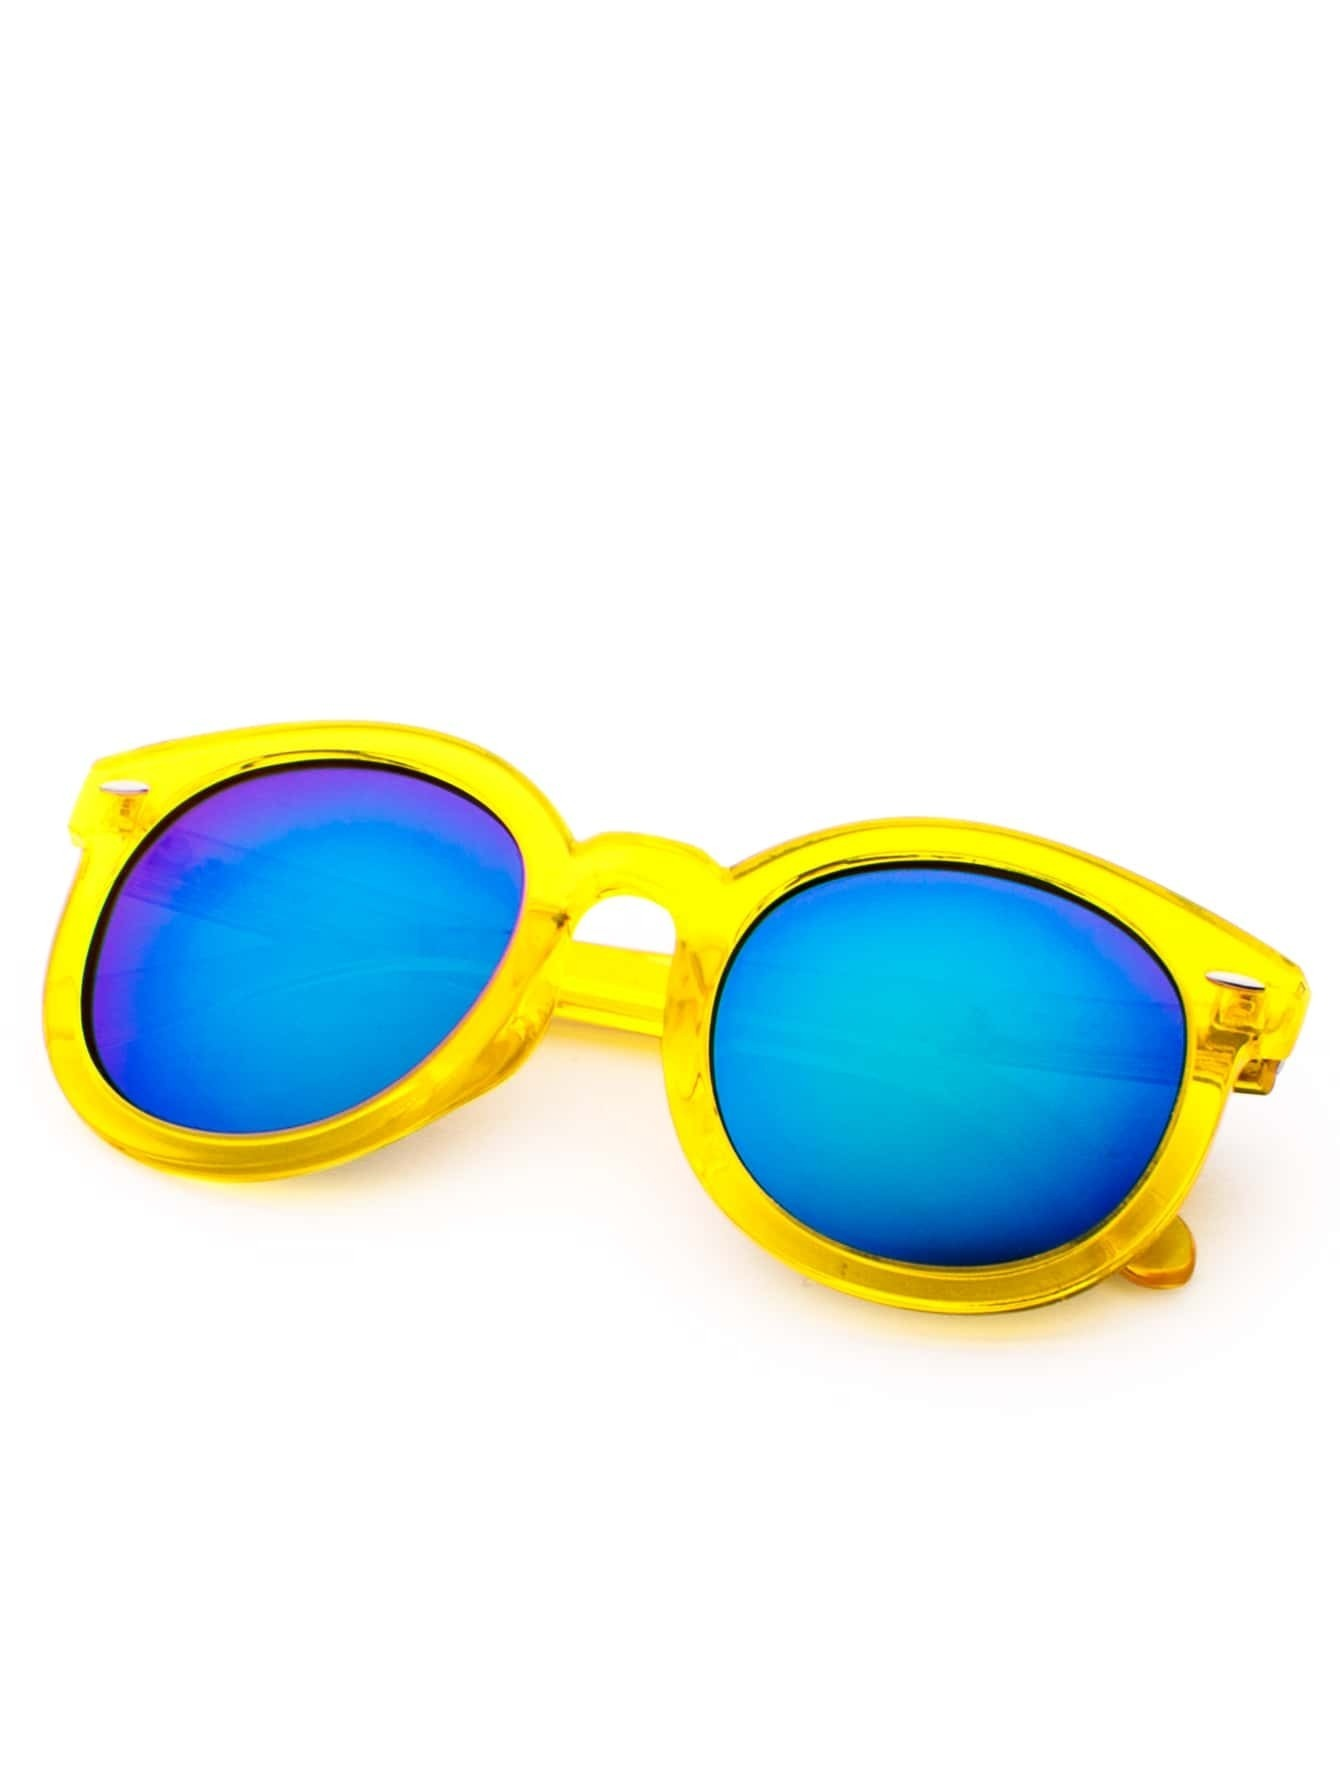 Yellow Frame Sunglasses : Yellow Frame Blue Lens Casual Sunglasses